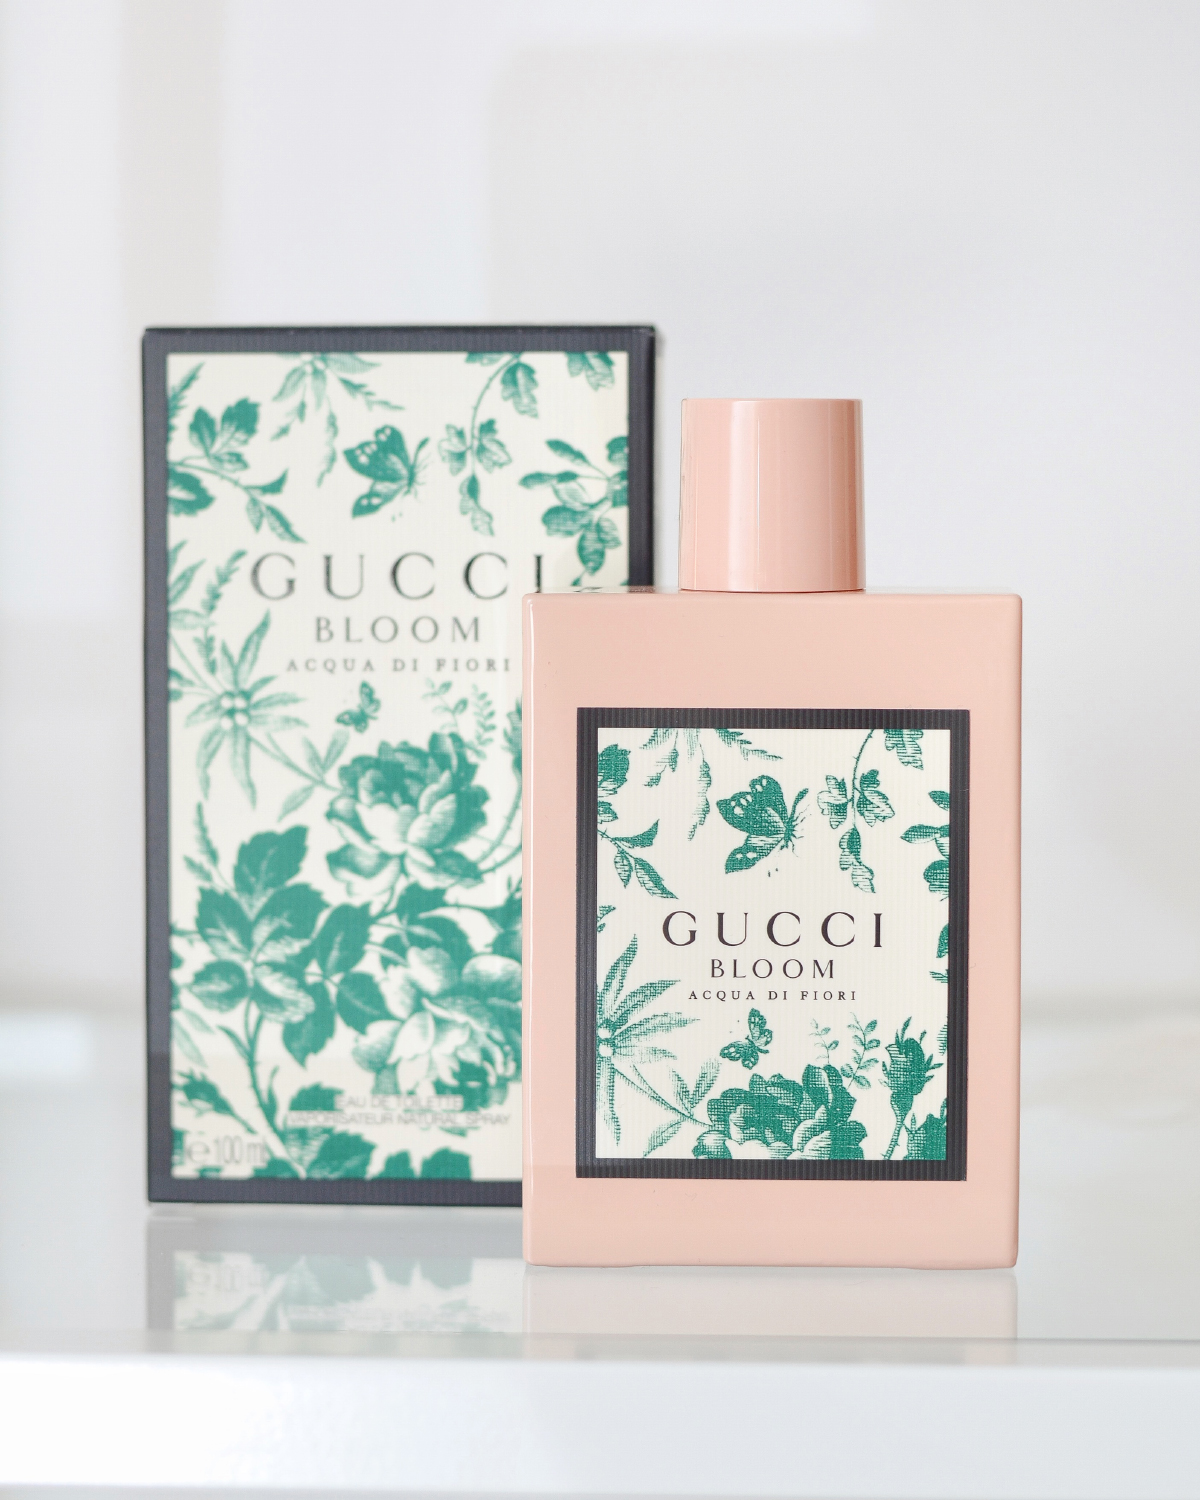 notino Gucci bloom review